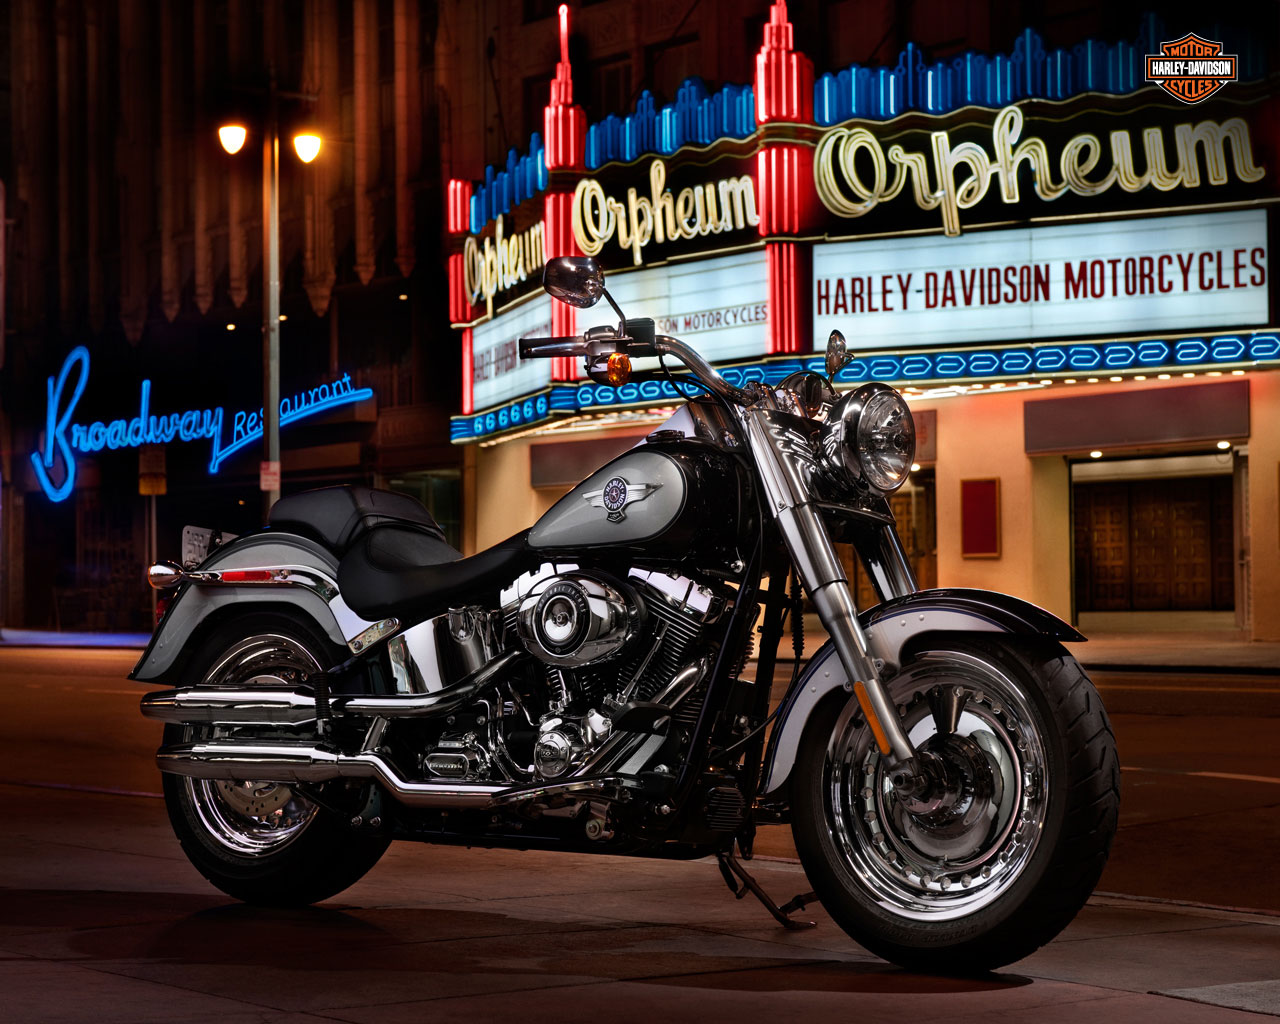 harley davidson motorcycles wallpaper 32041352 fanpop. Black Bedroom Furniture Sets. Home Design Ideas